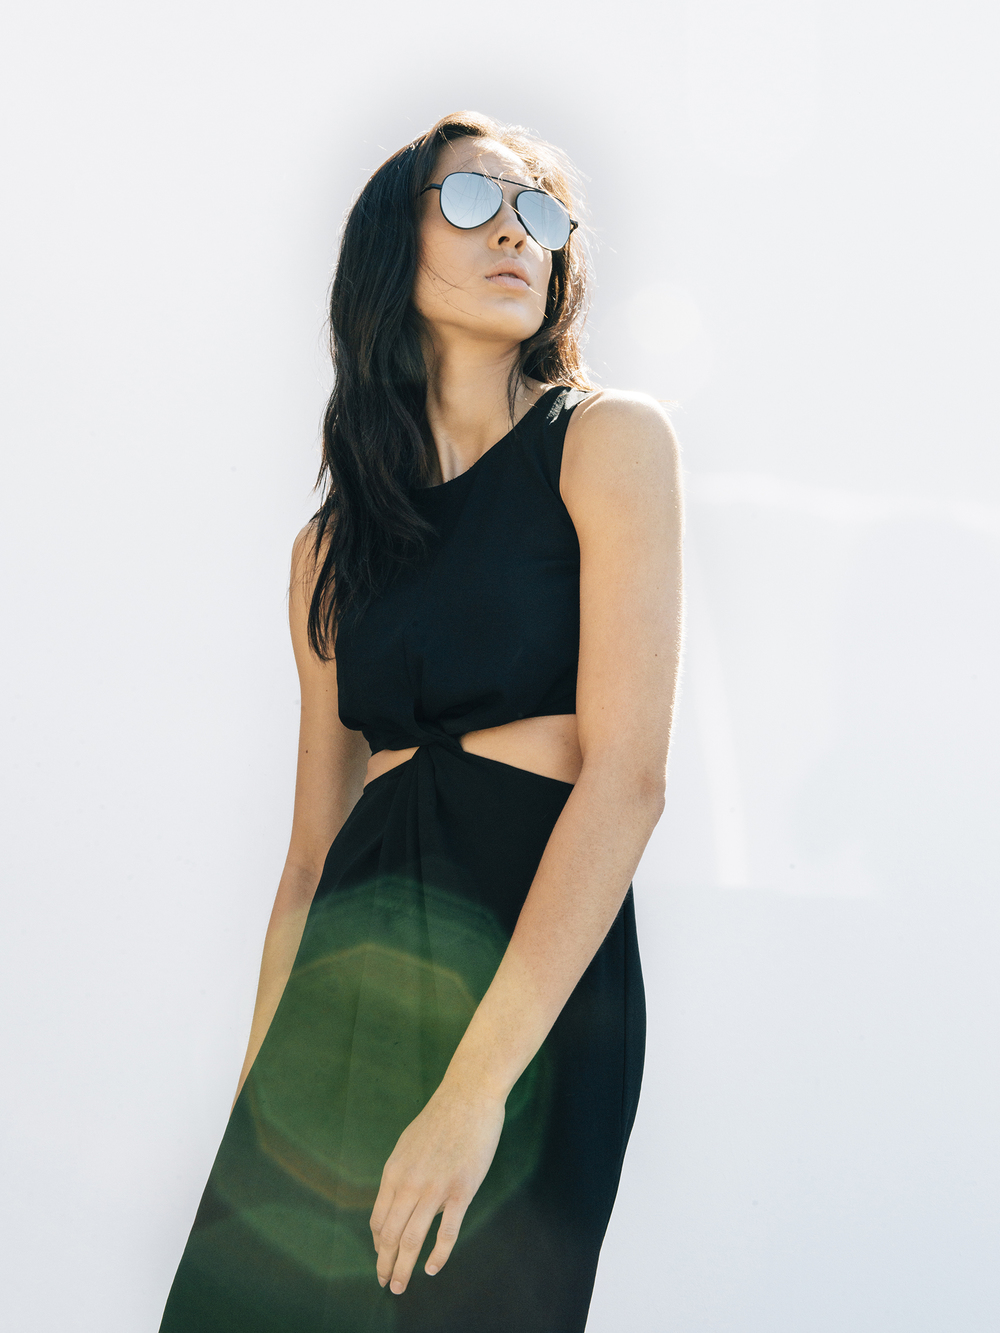 BlackOptical-Summer-2016-07.jpg